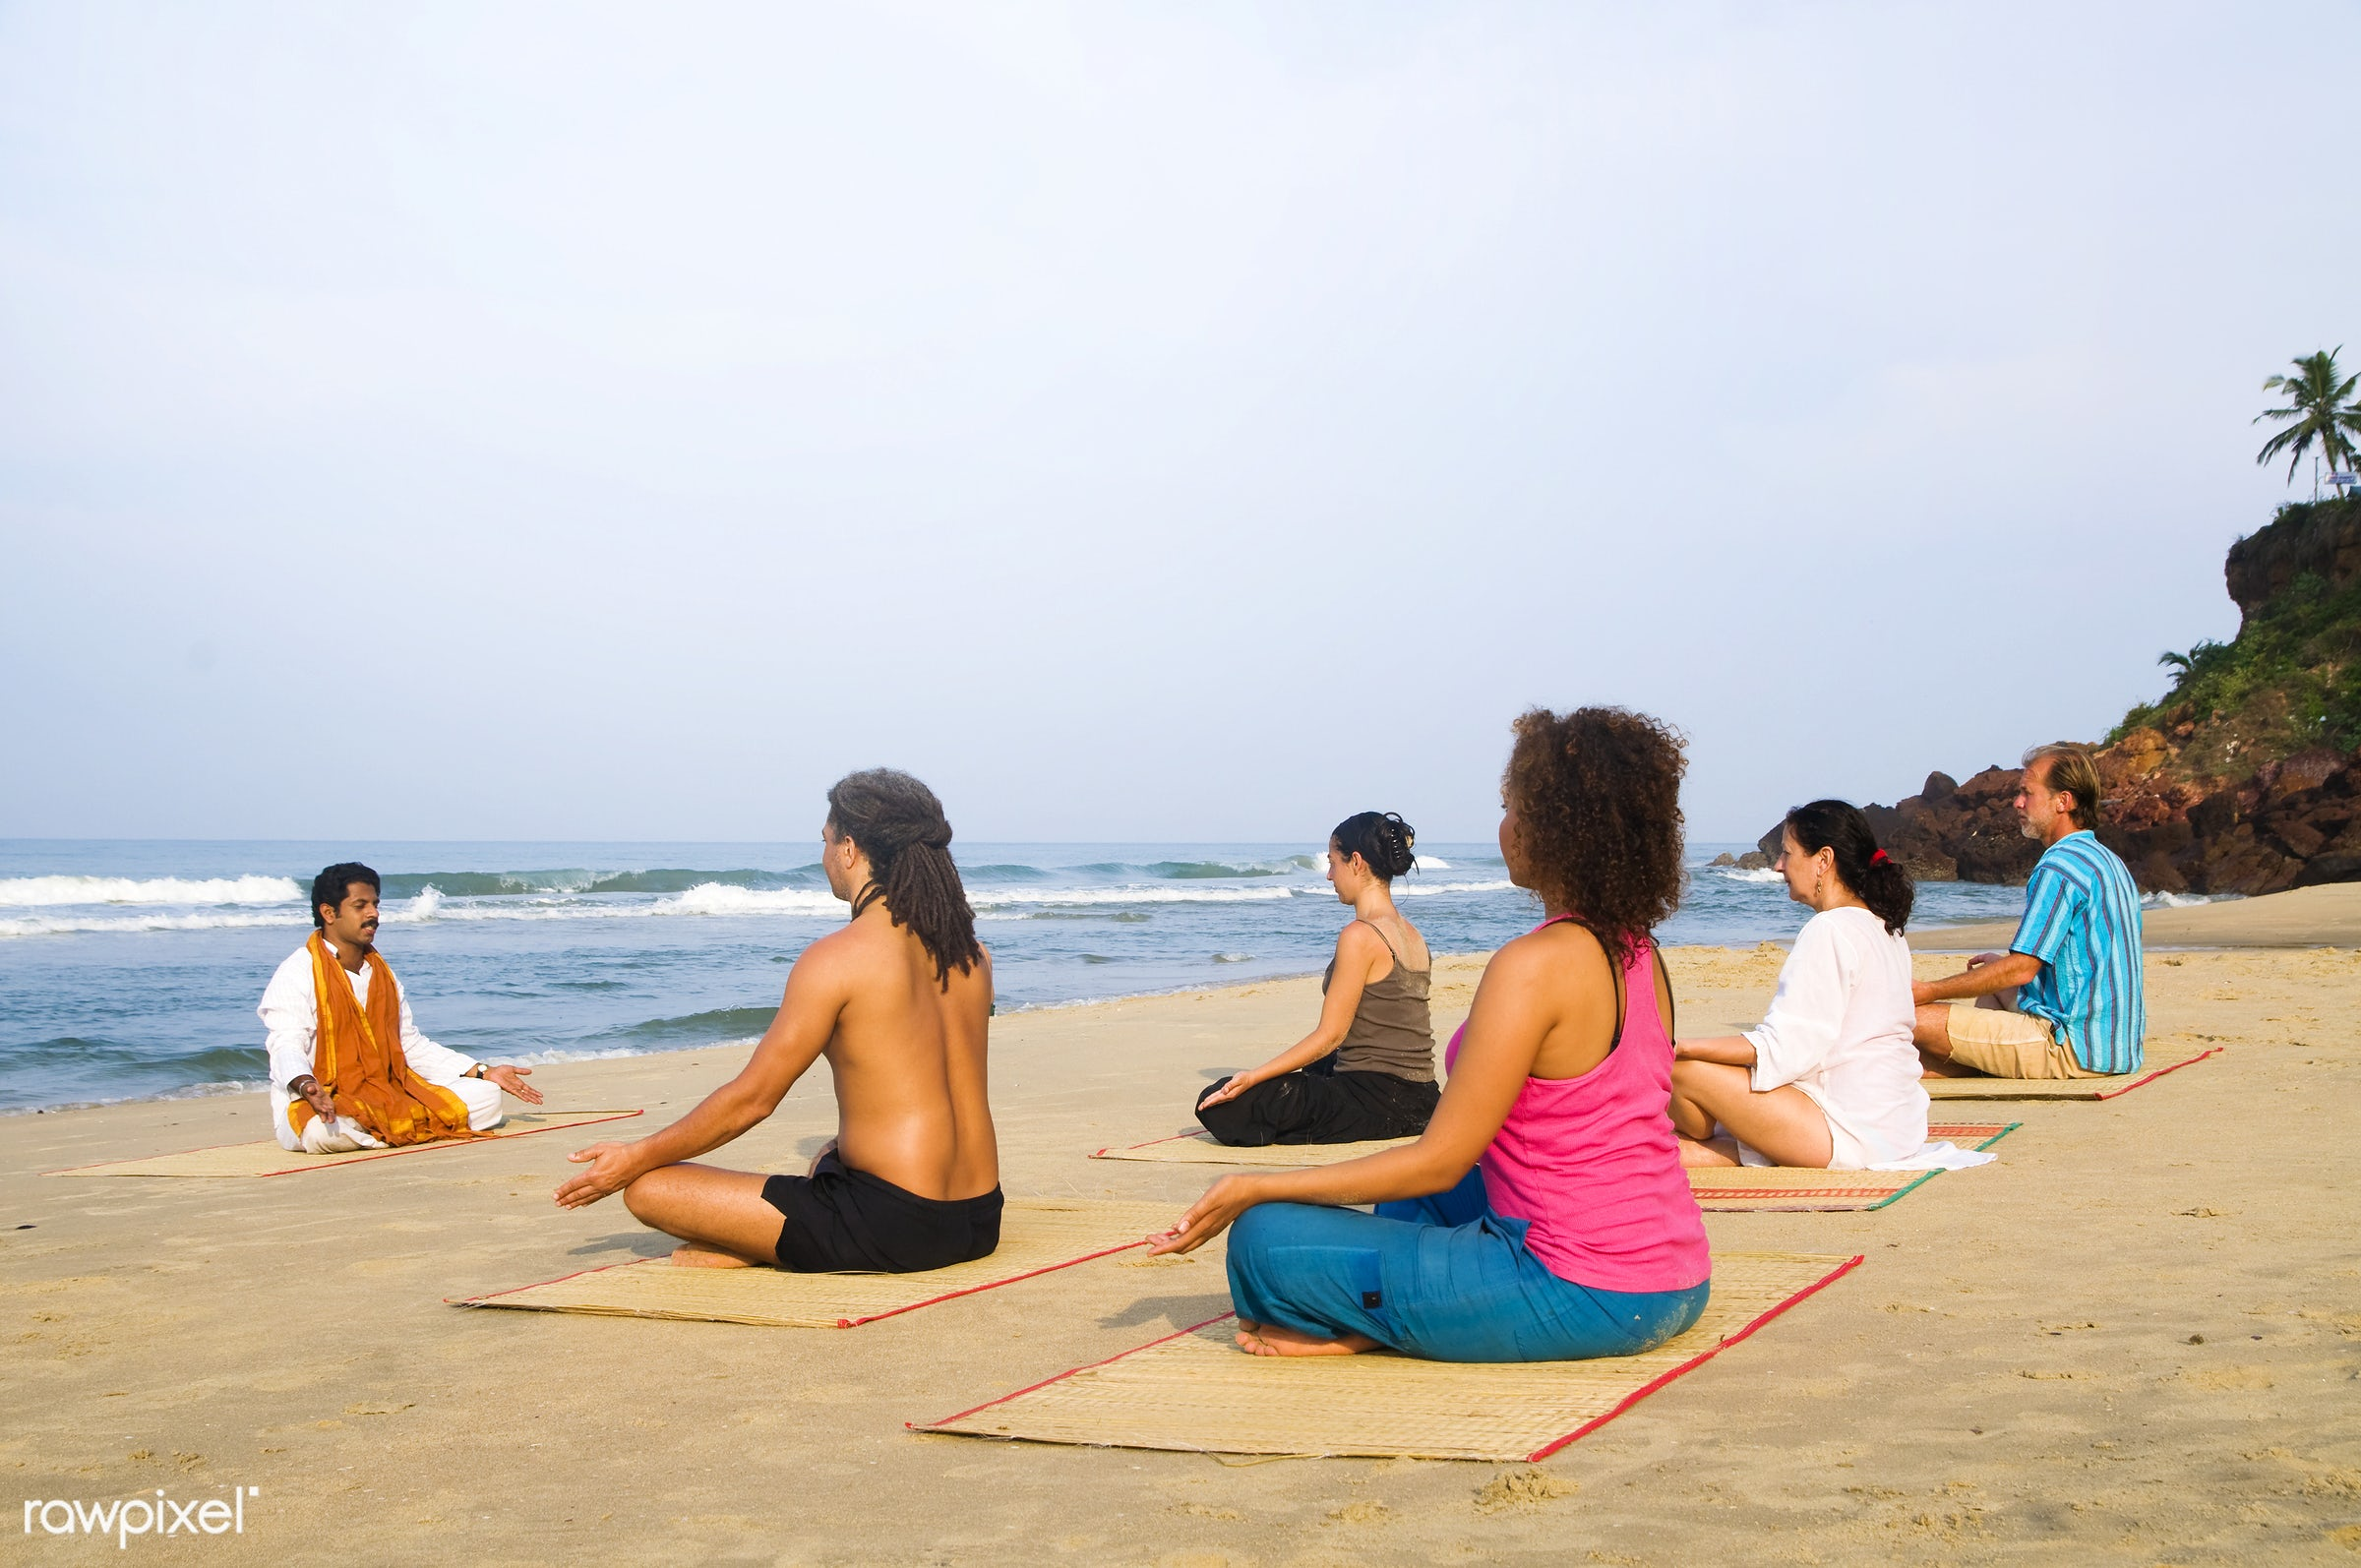 Yoga class by the beach - yoga, sea, body, healthy, water, activity, adult, arms raised, beach, beauty in nature, body care...